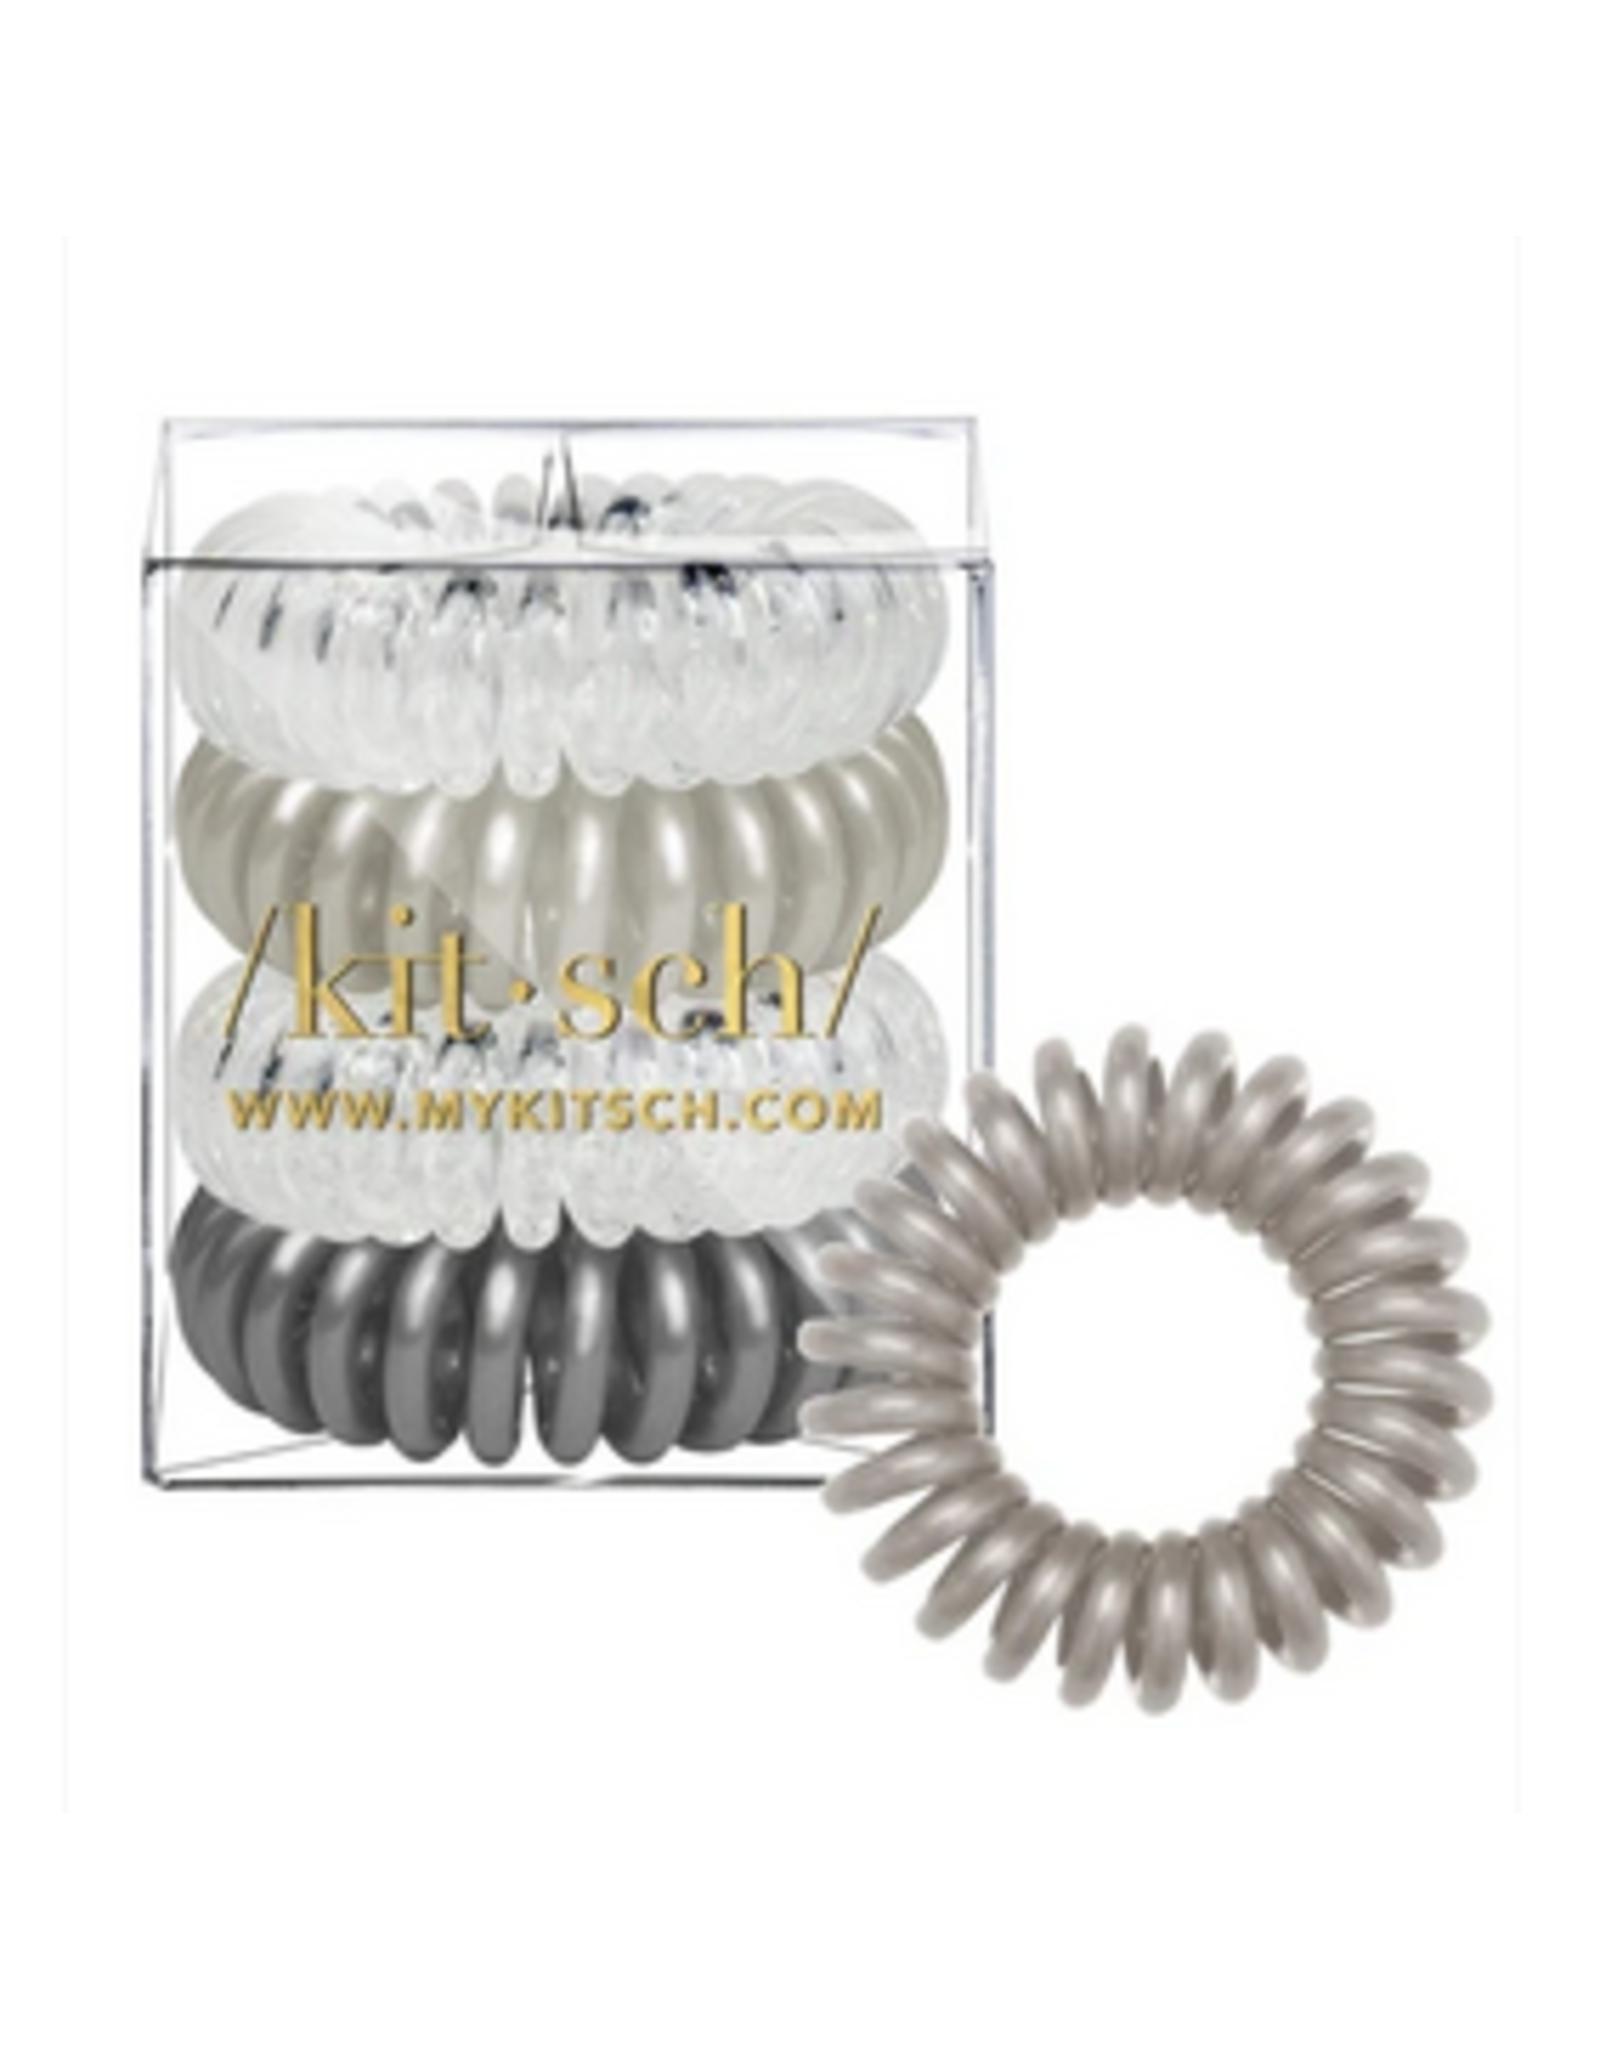 Kitsch Hair Coils 4 Pack, charcoal